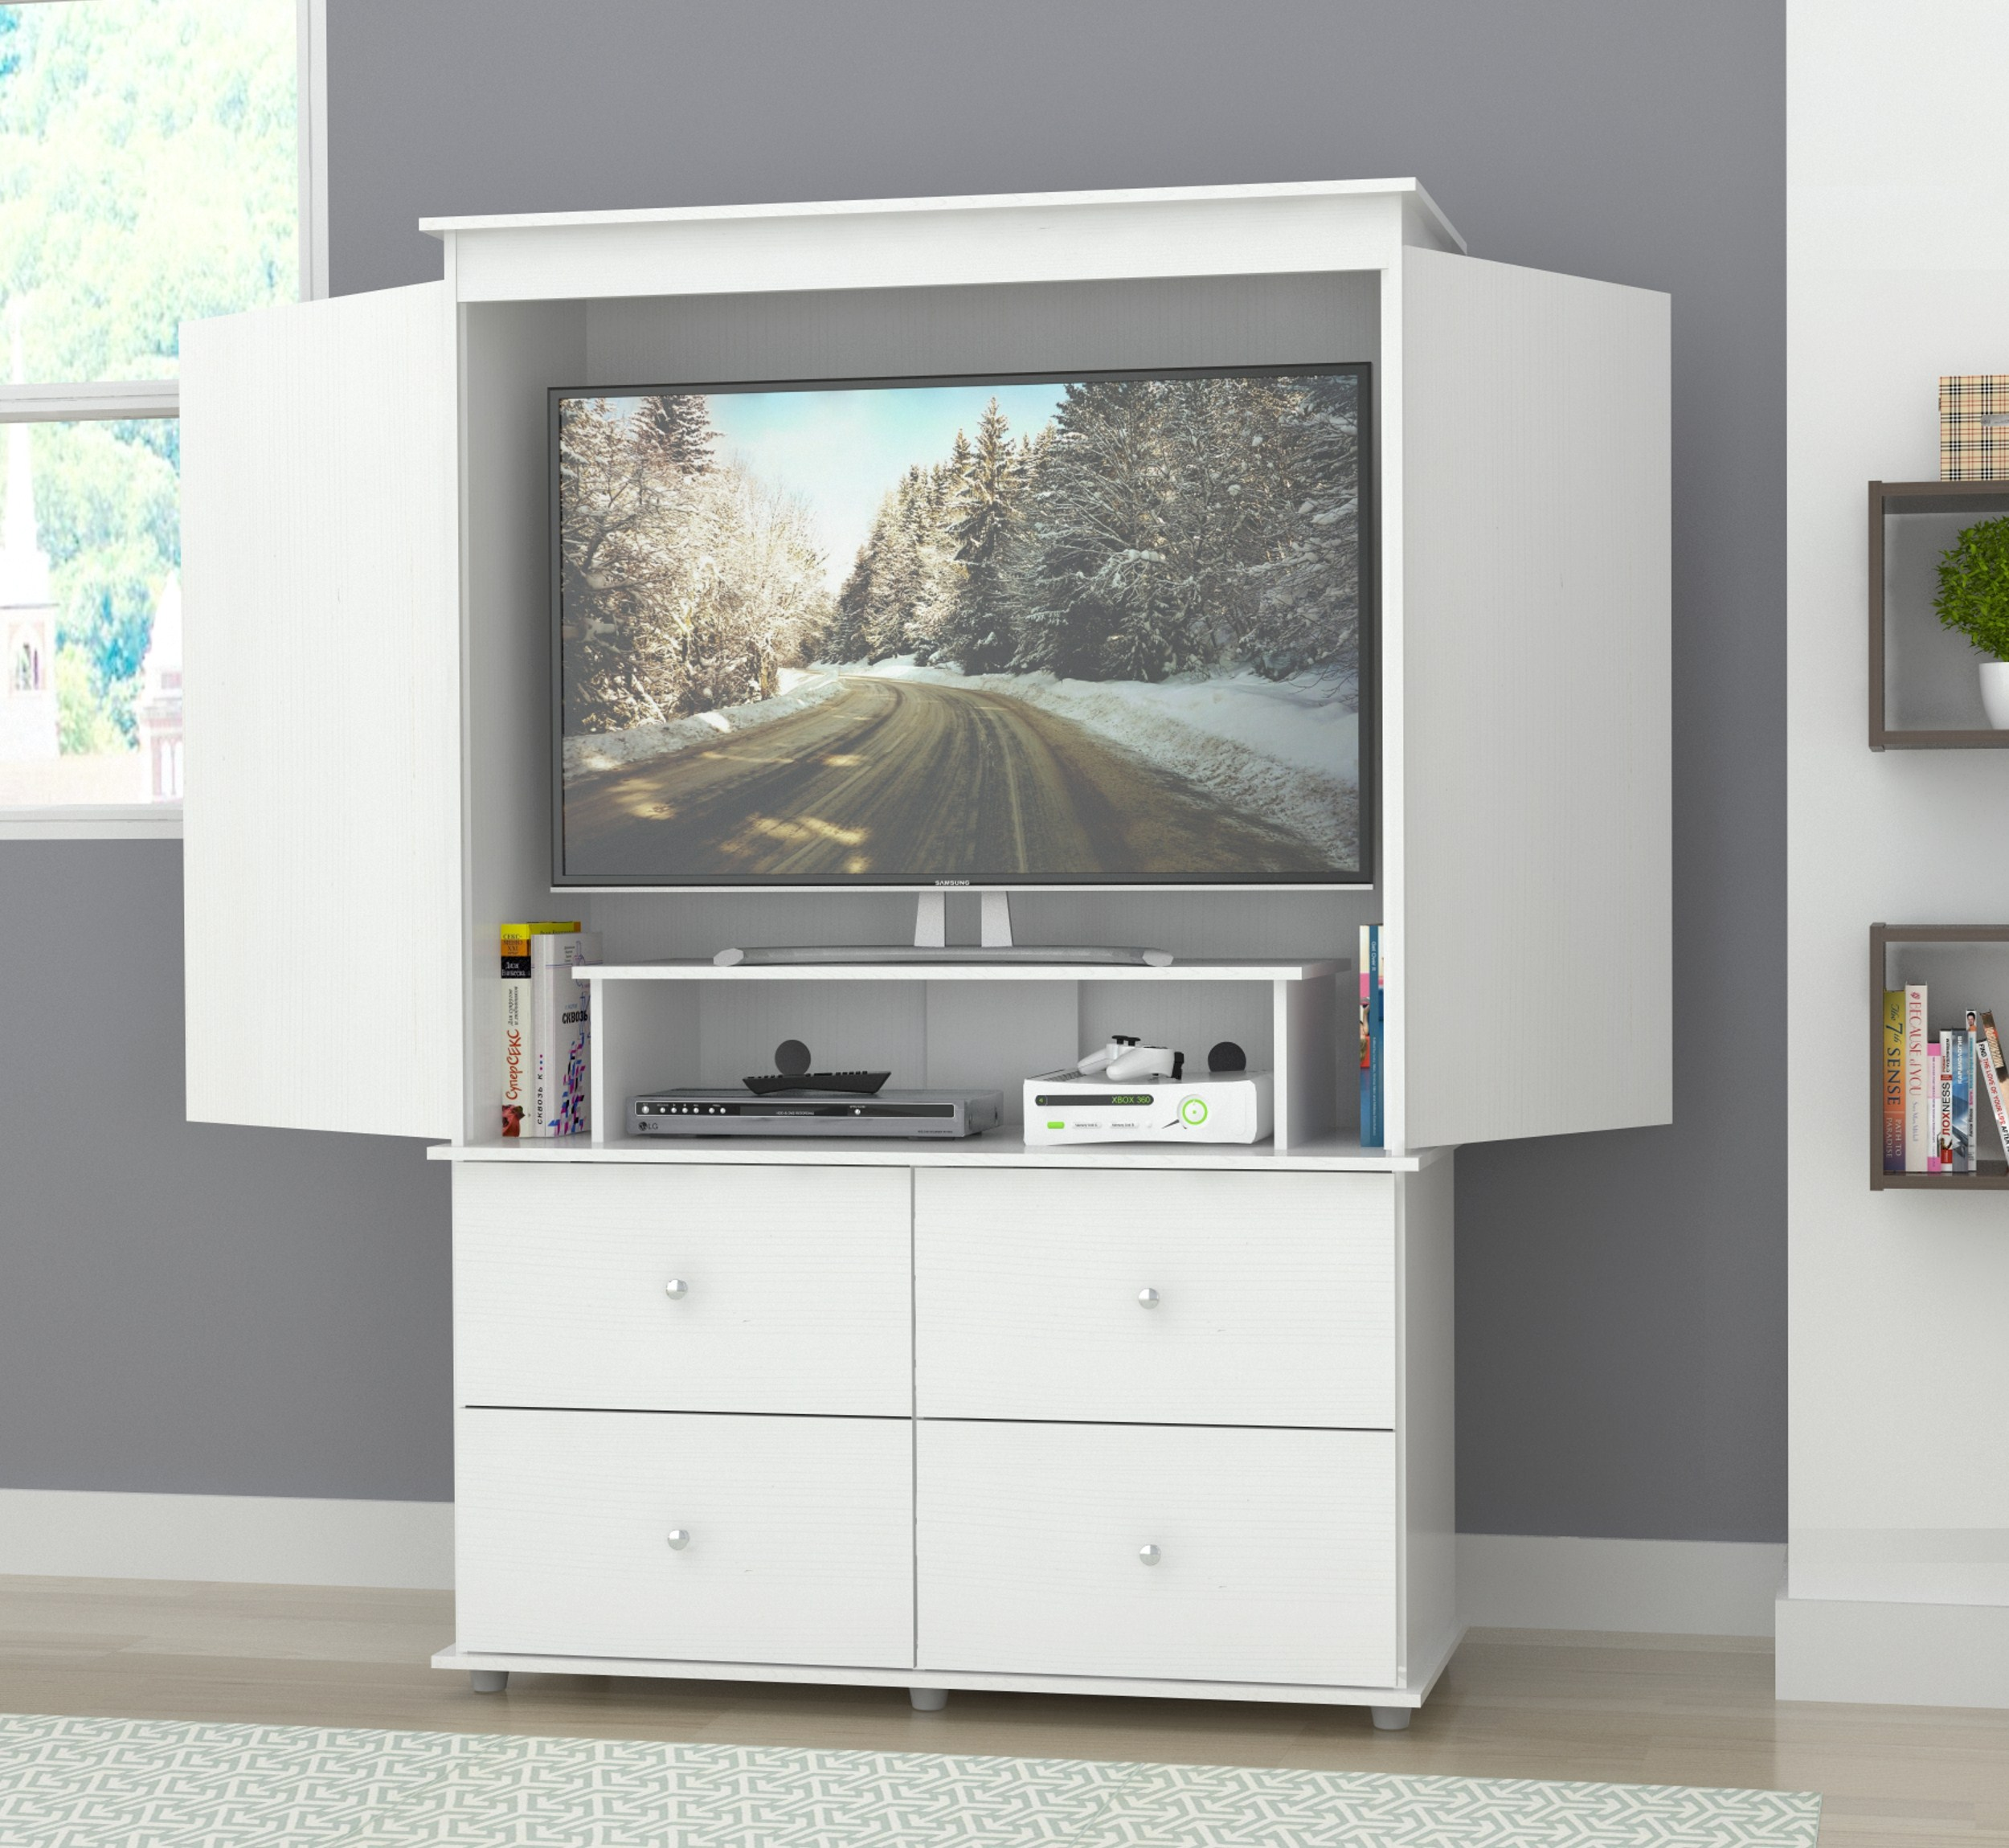 Inval Modern Laricina-white Armoire/ AV Video Combo Cabinet